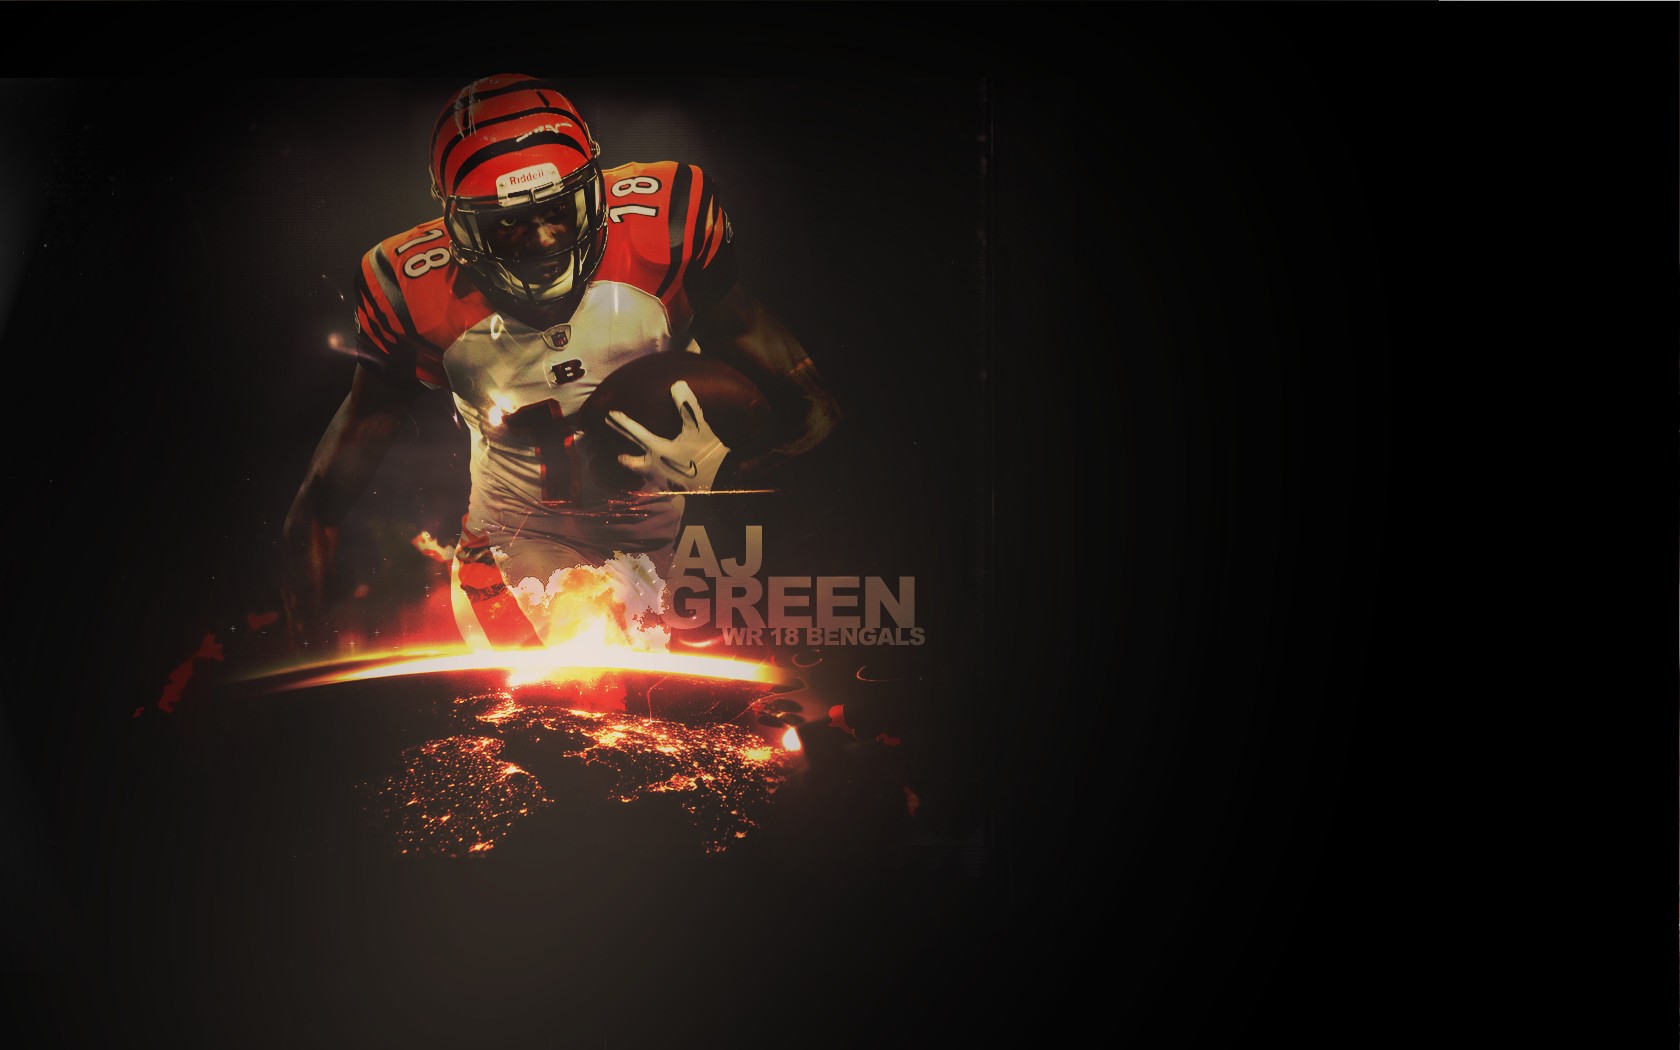 aj green wallpaper - sf wallpaper